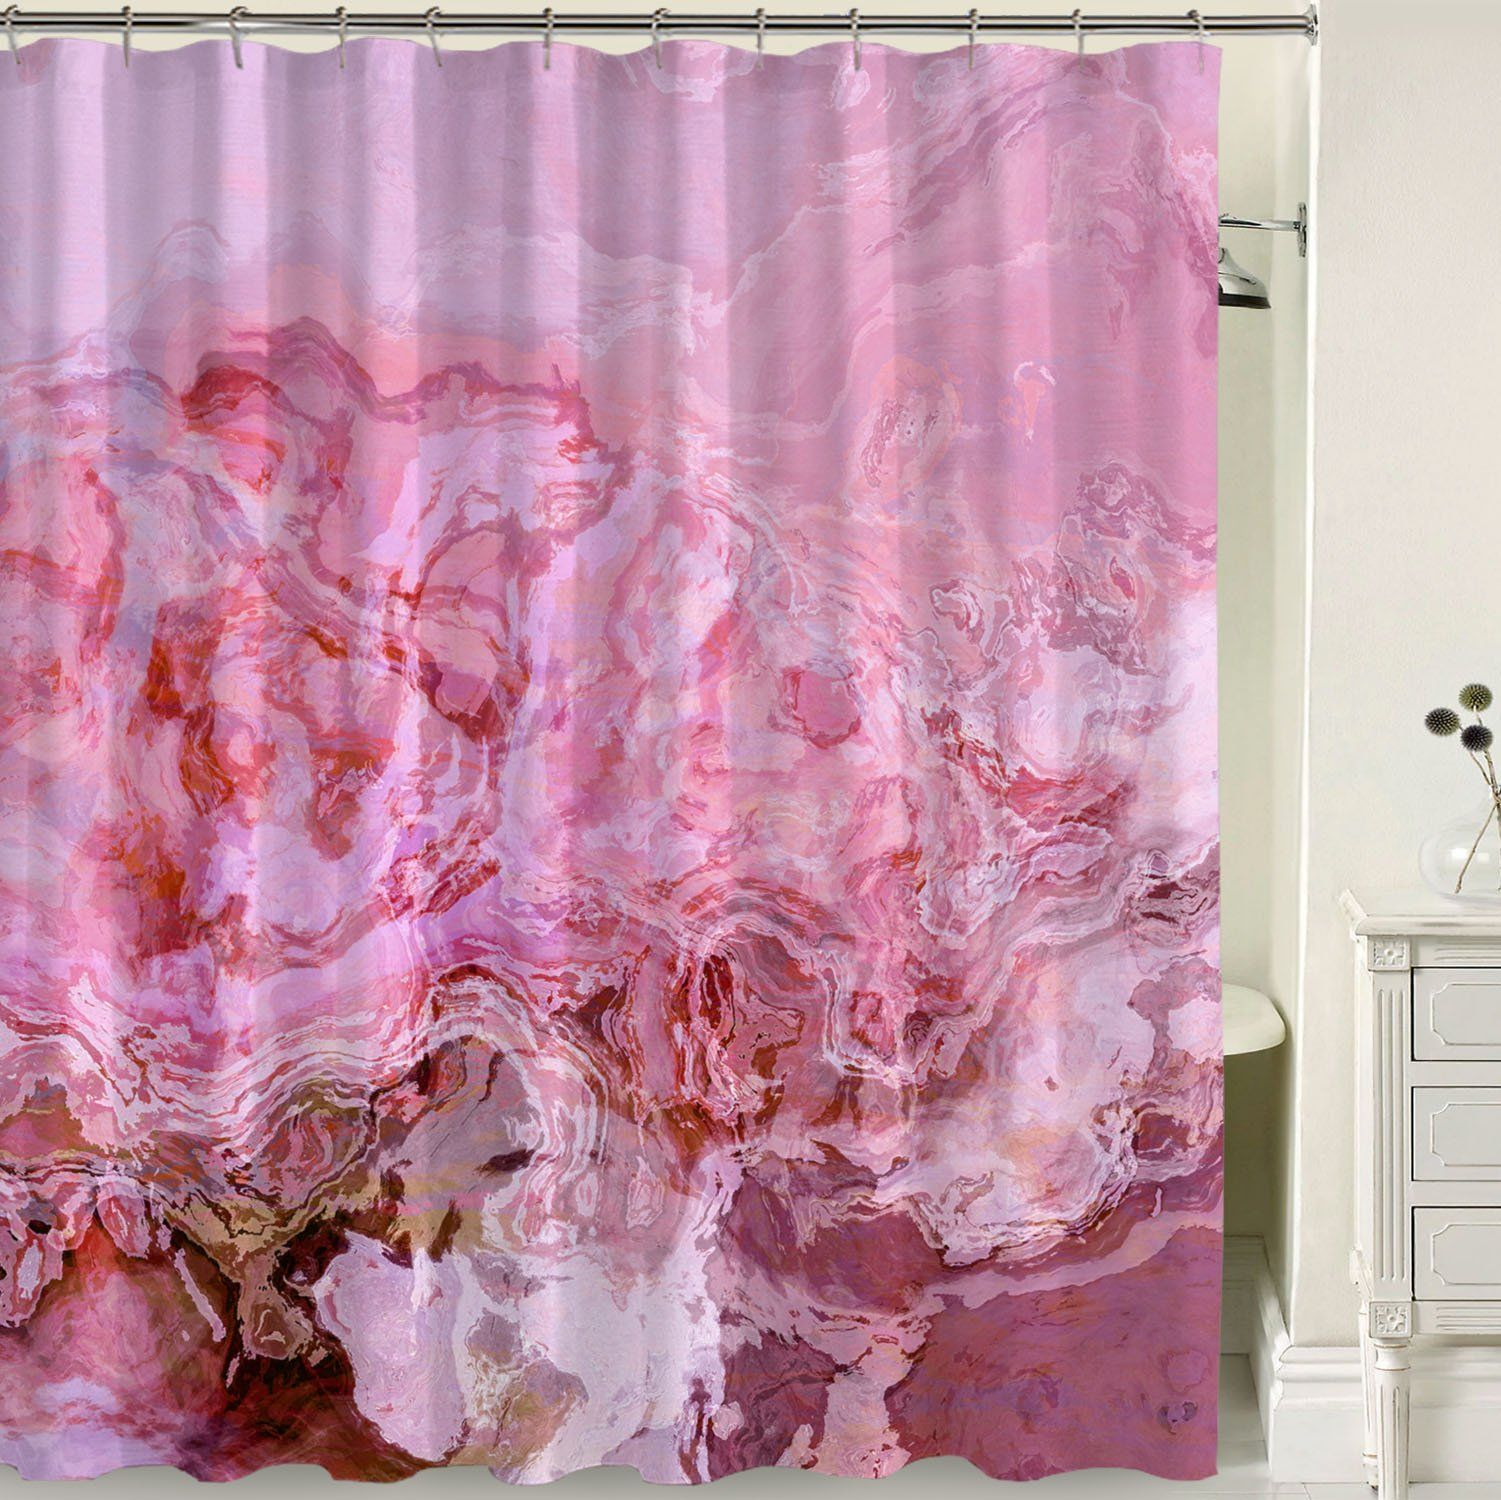 Abstract Art Shower Curtain Pastel Pink Parfait